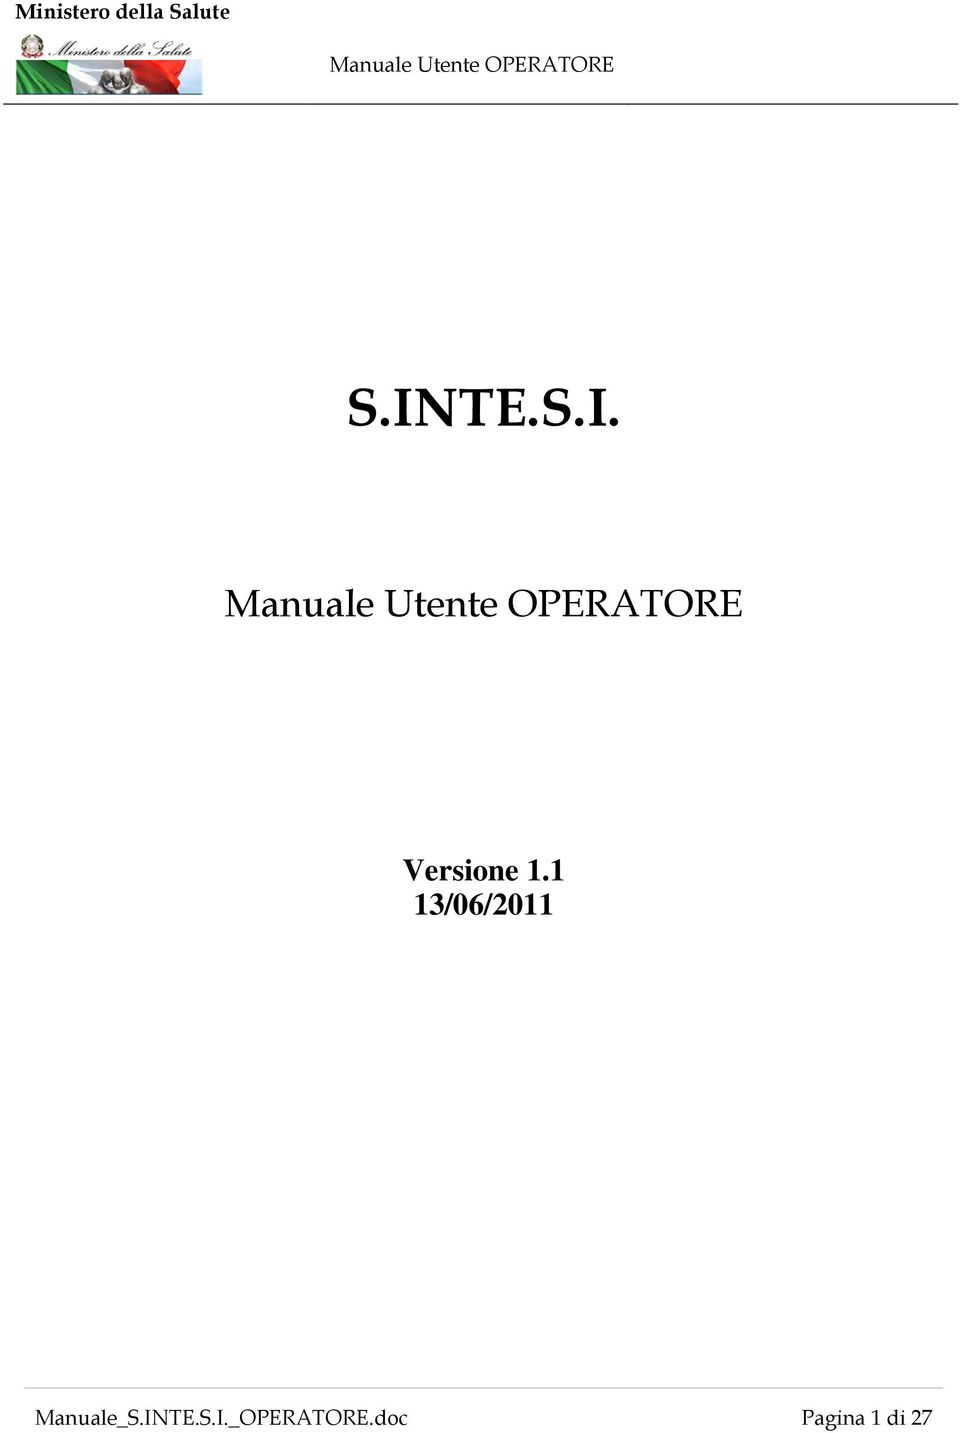 Manuale_S.IN